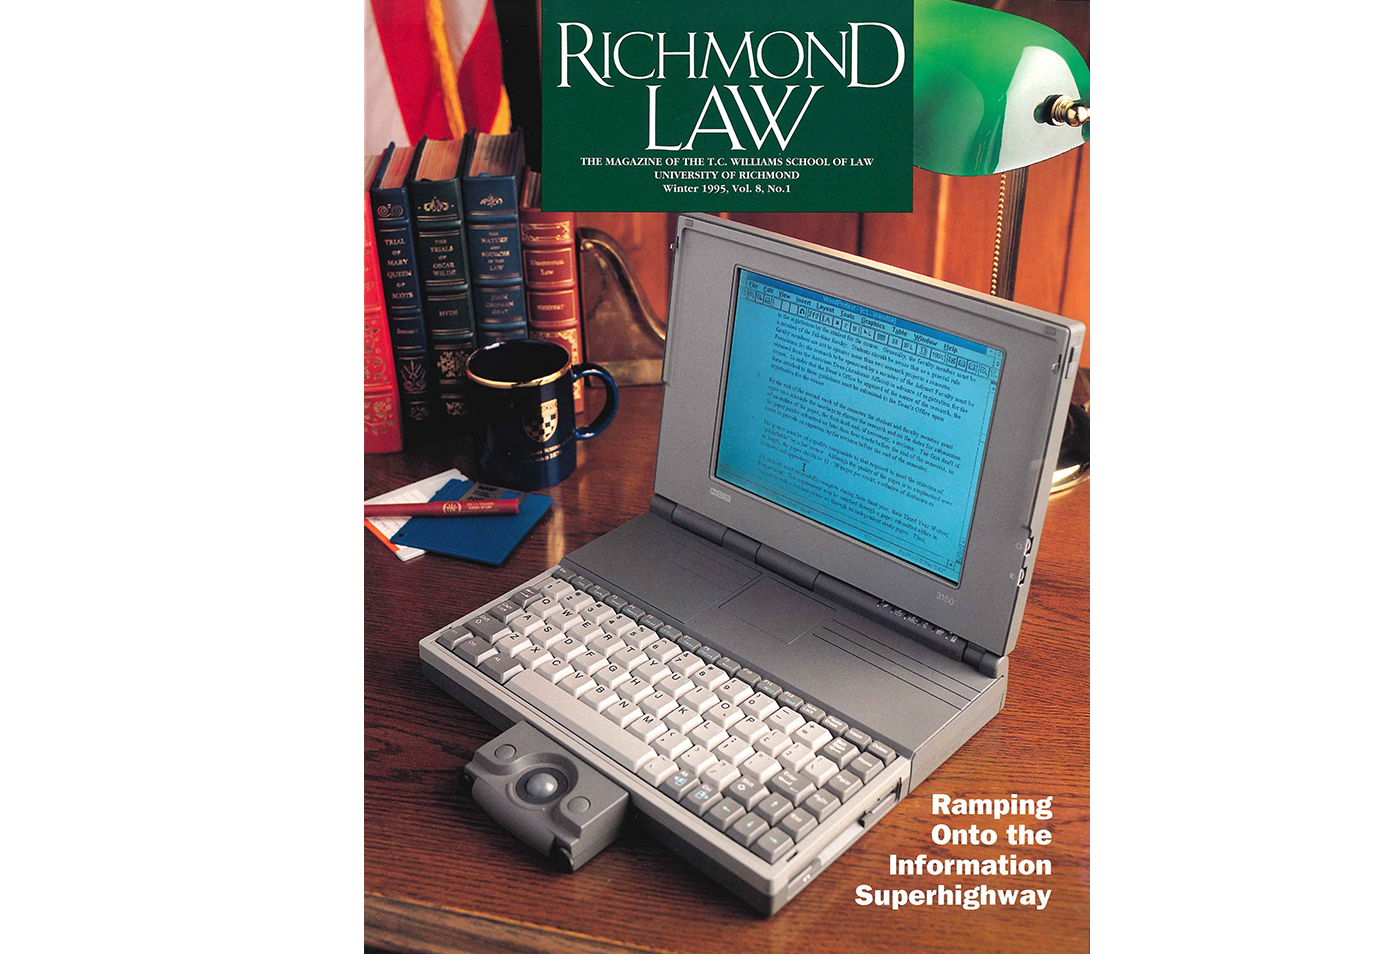 Laptops at Richmond Law